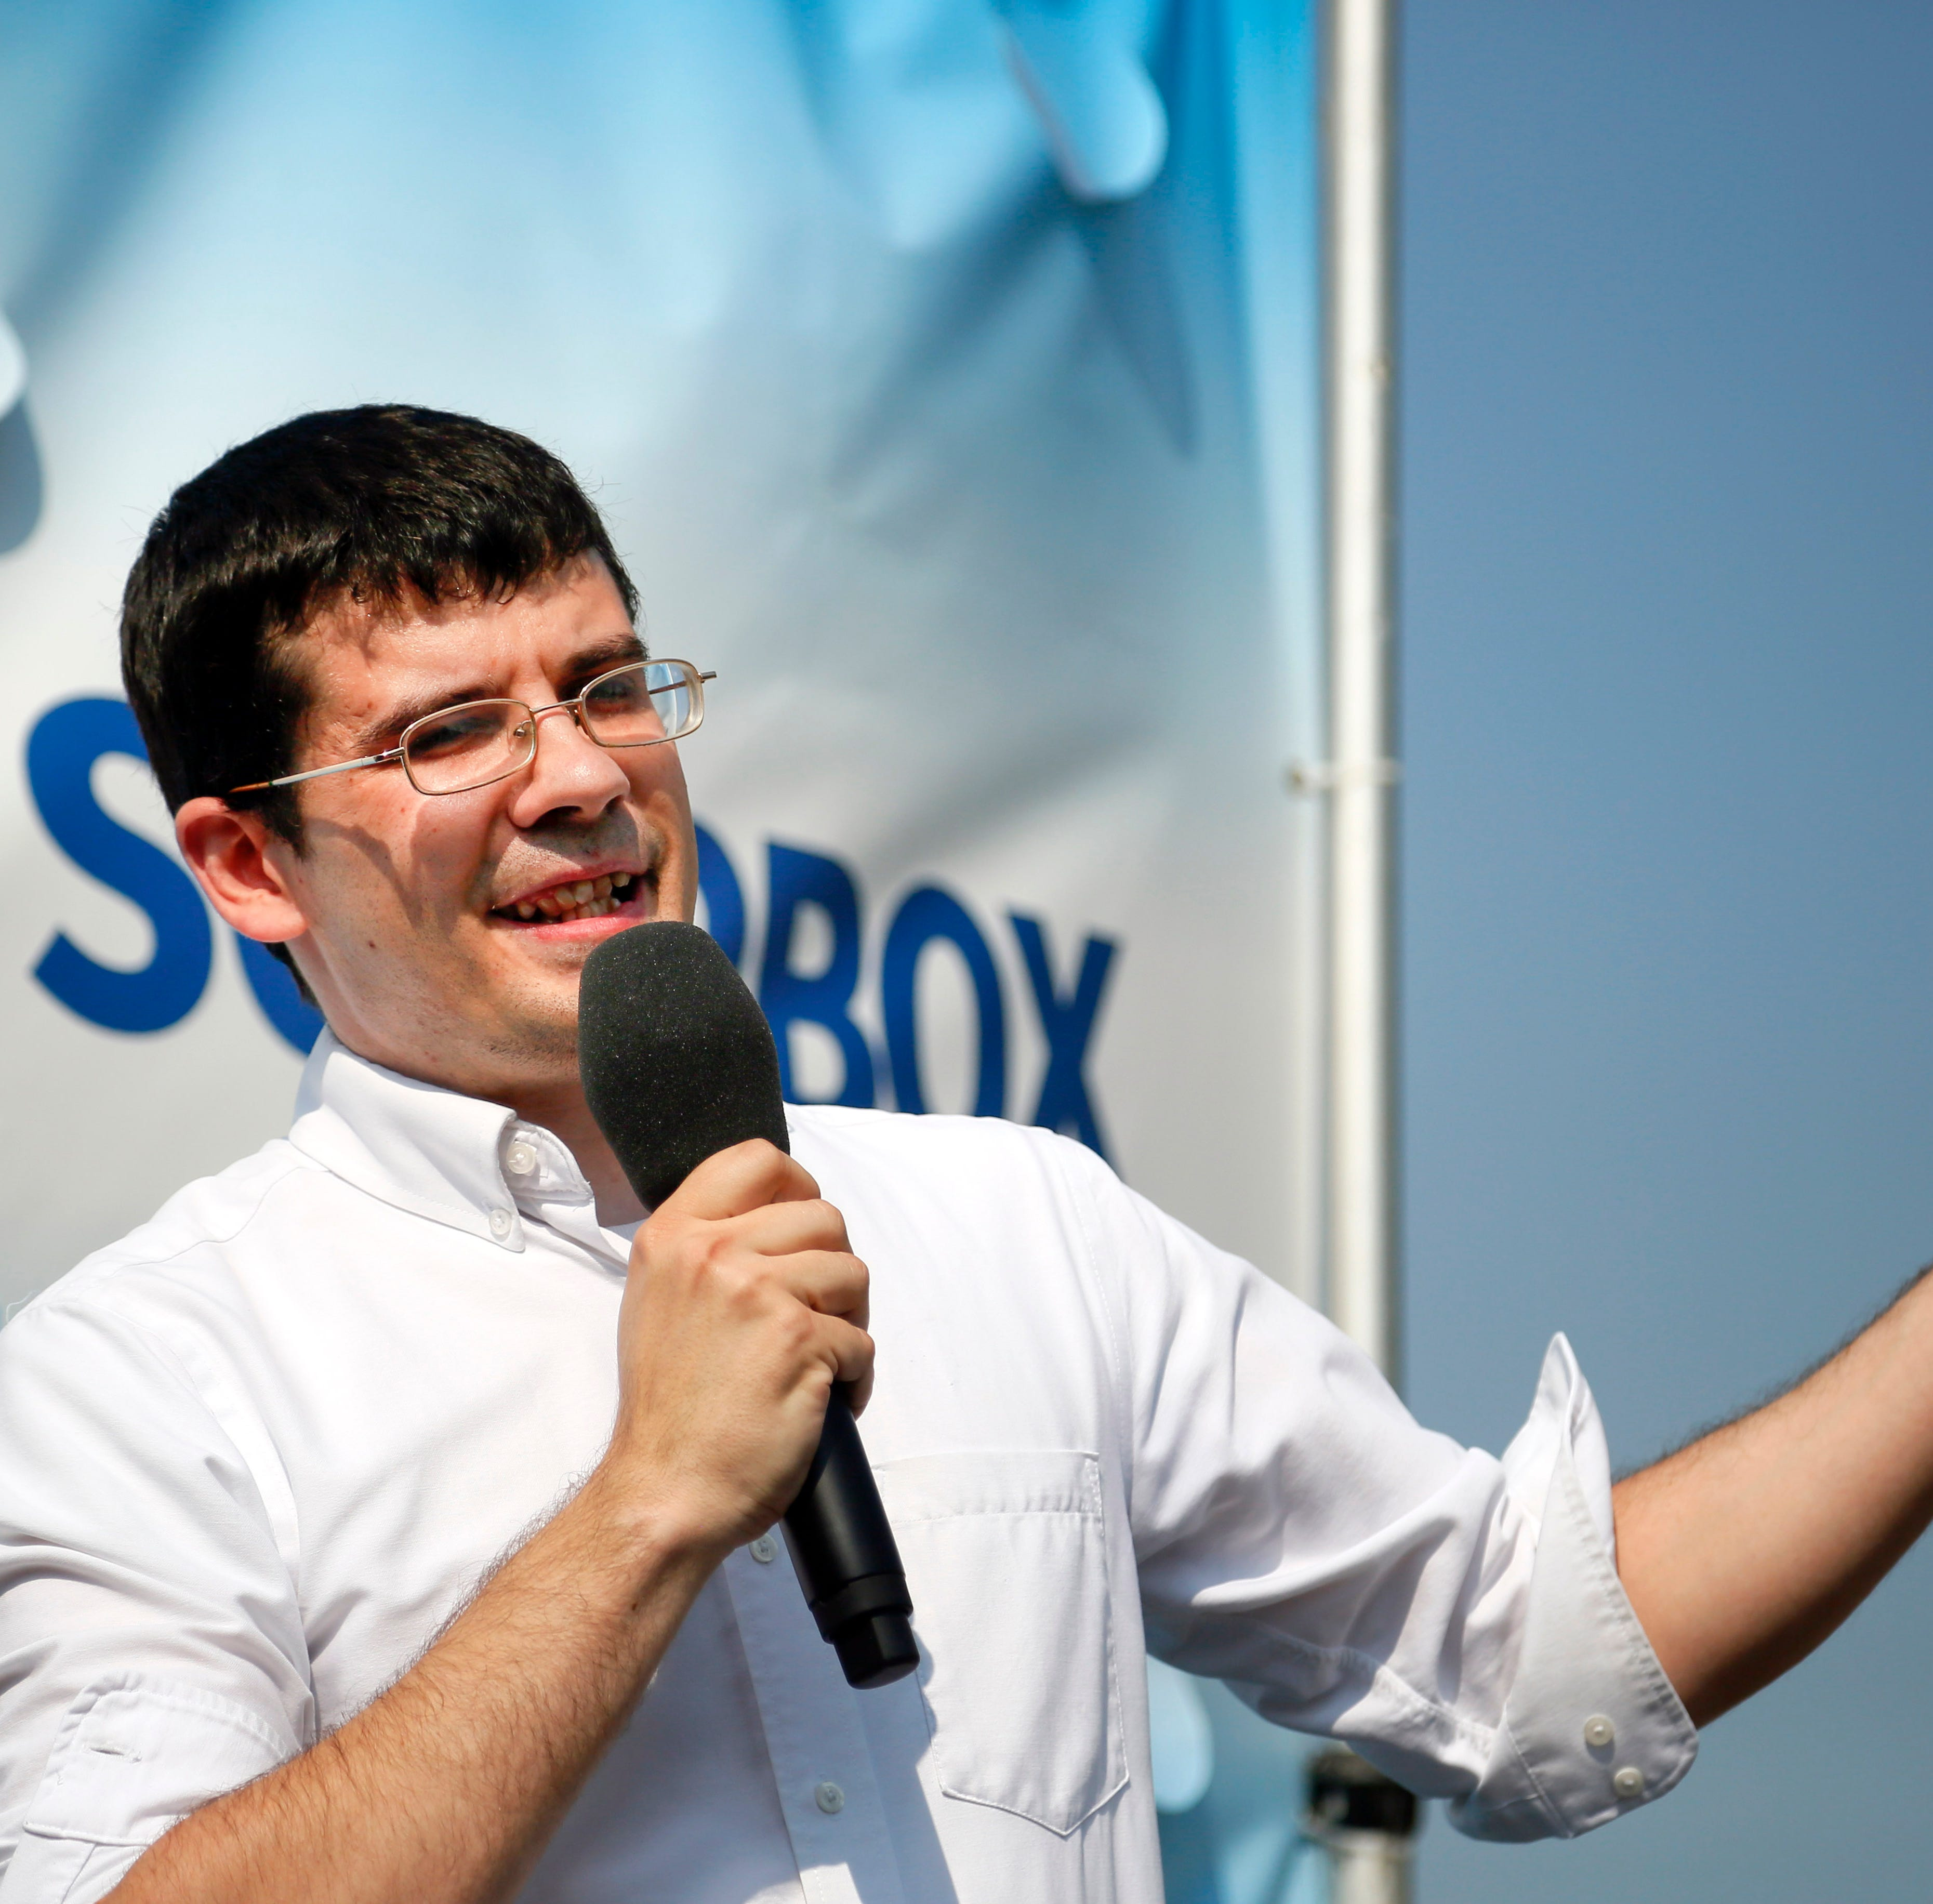 Jake Porter at Register's Soapbox: Winning unlikely, but Libertarians can shift policy